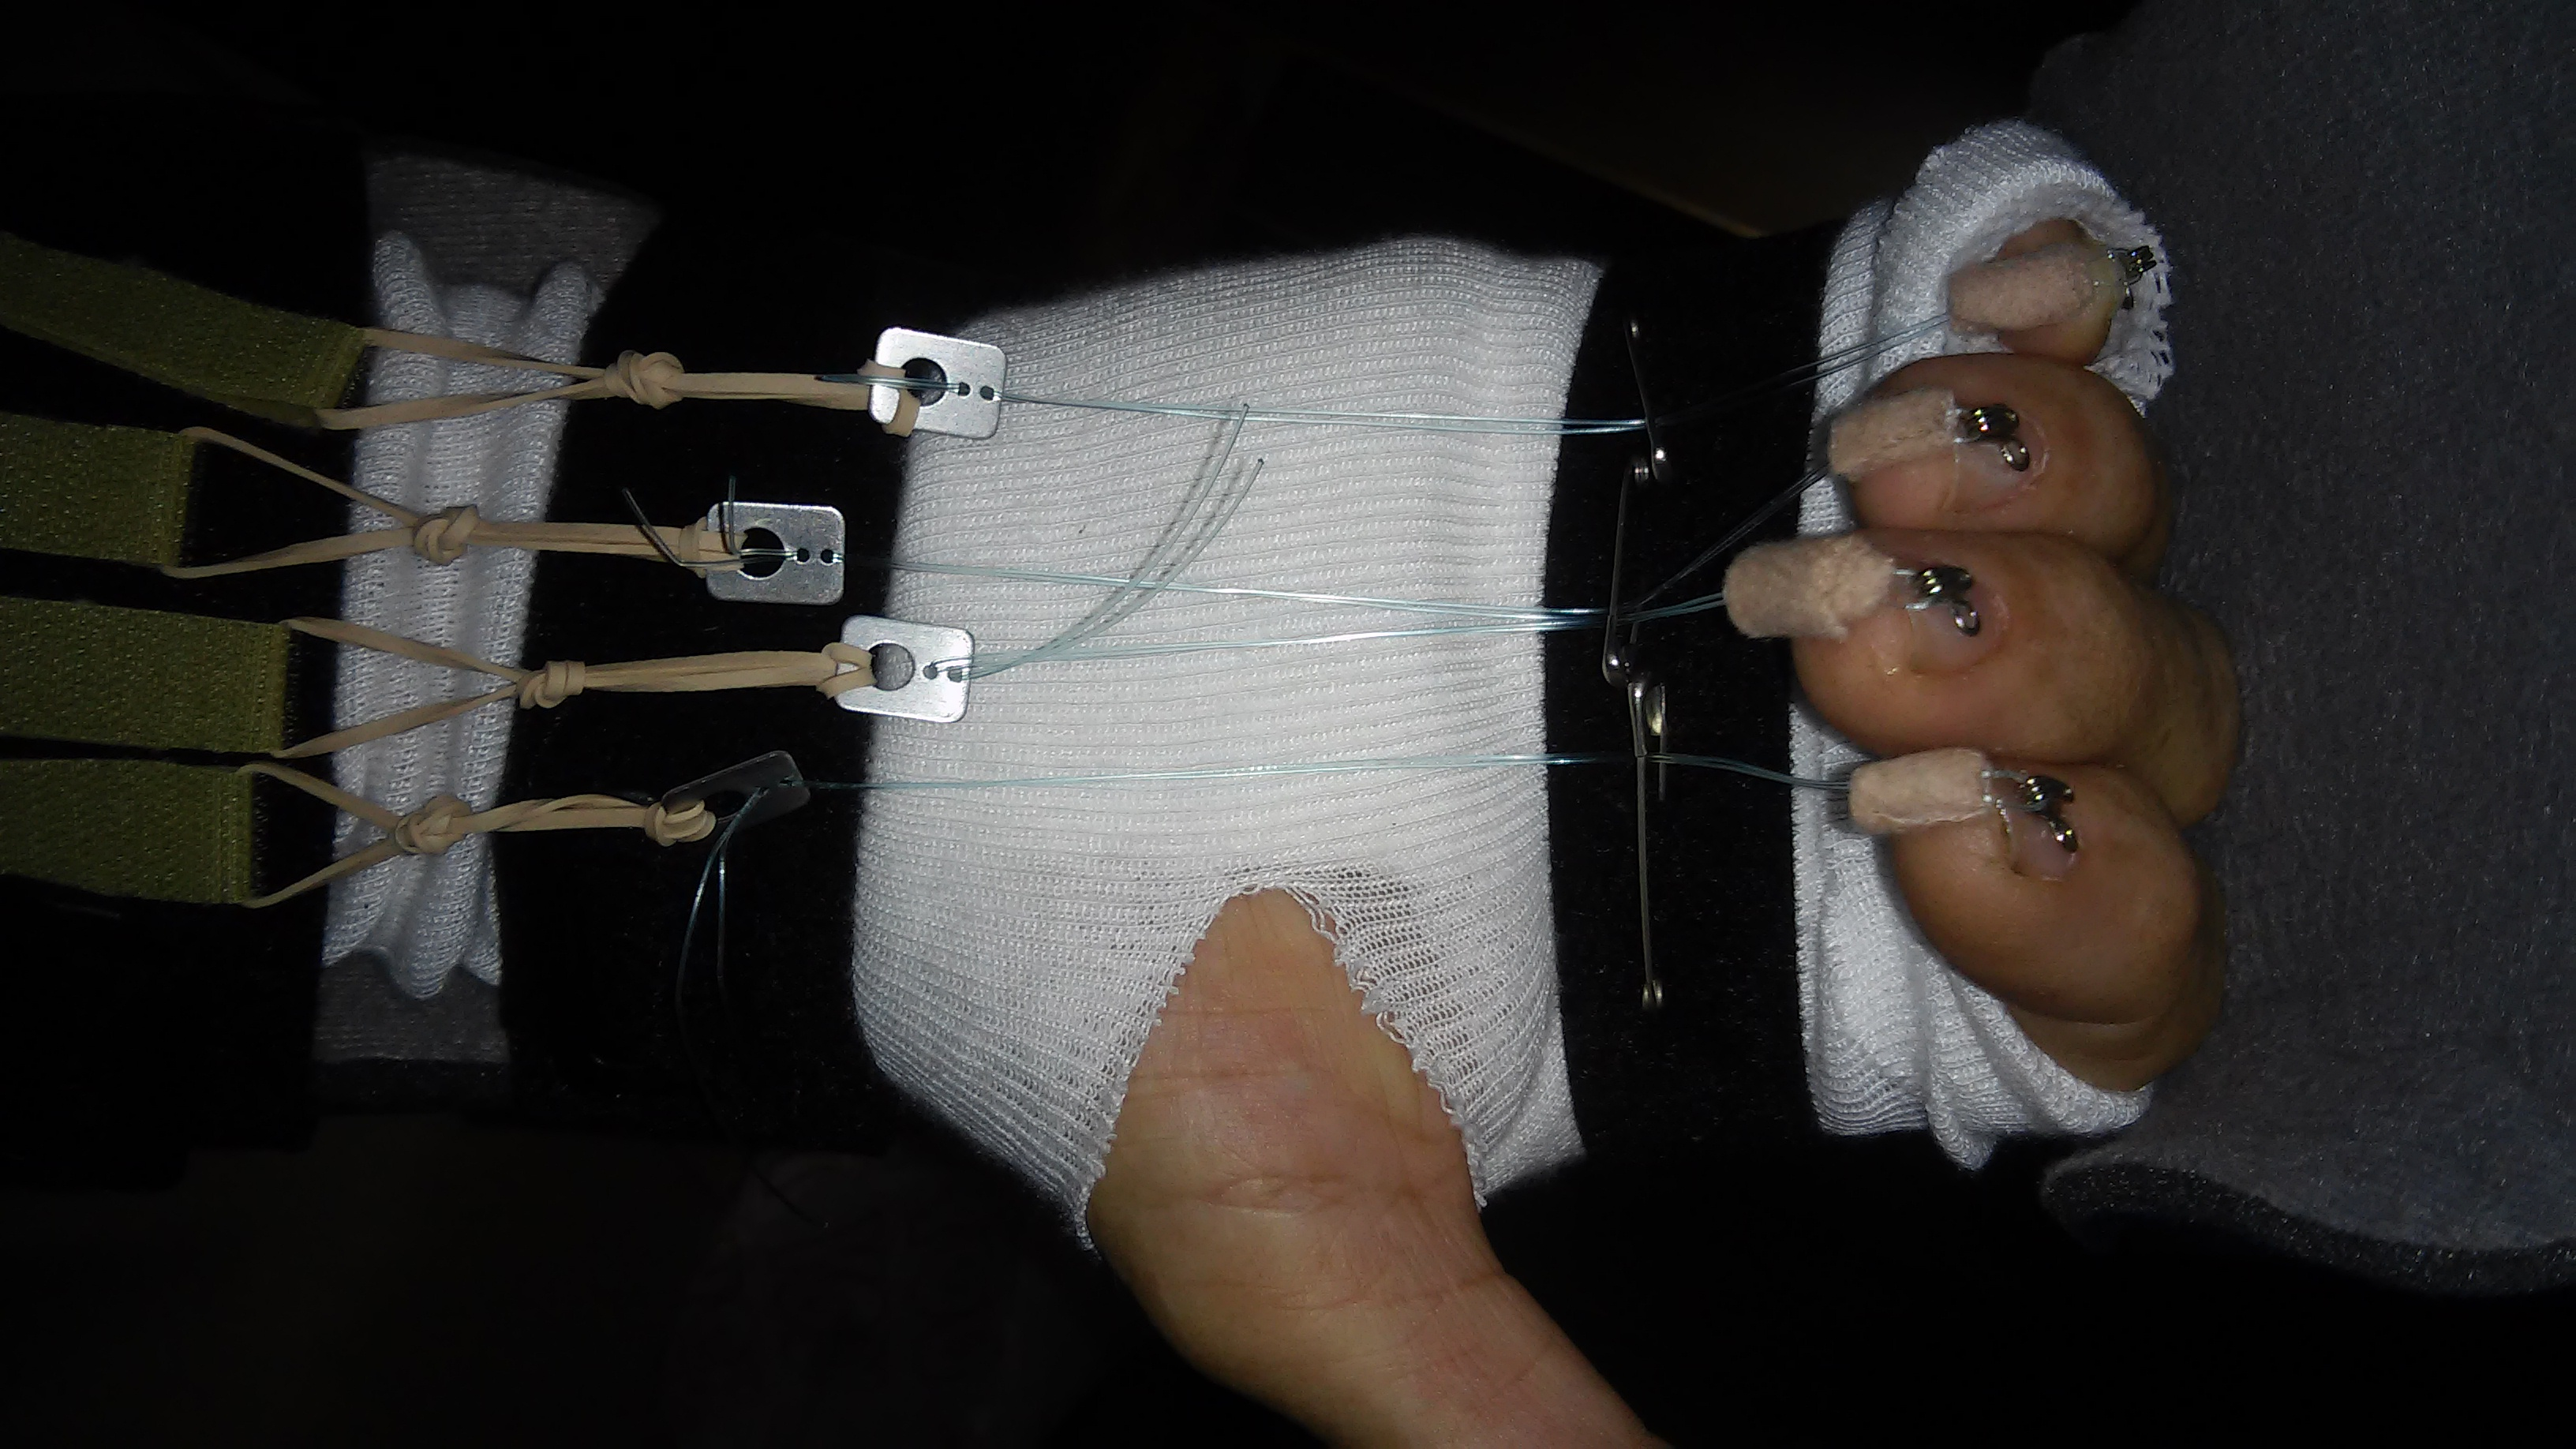 Nothing bionic about this. Rubber bands, 20# test line, CA glue, bra hooks